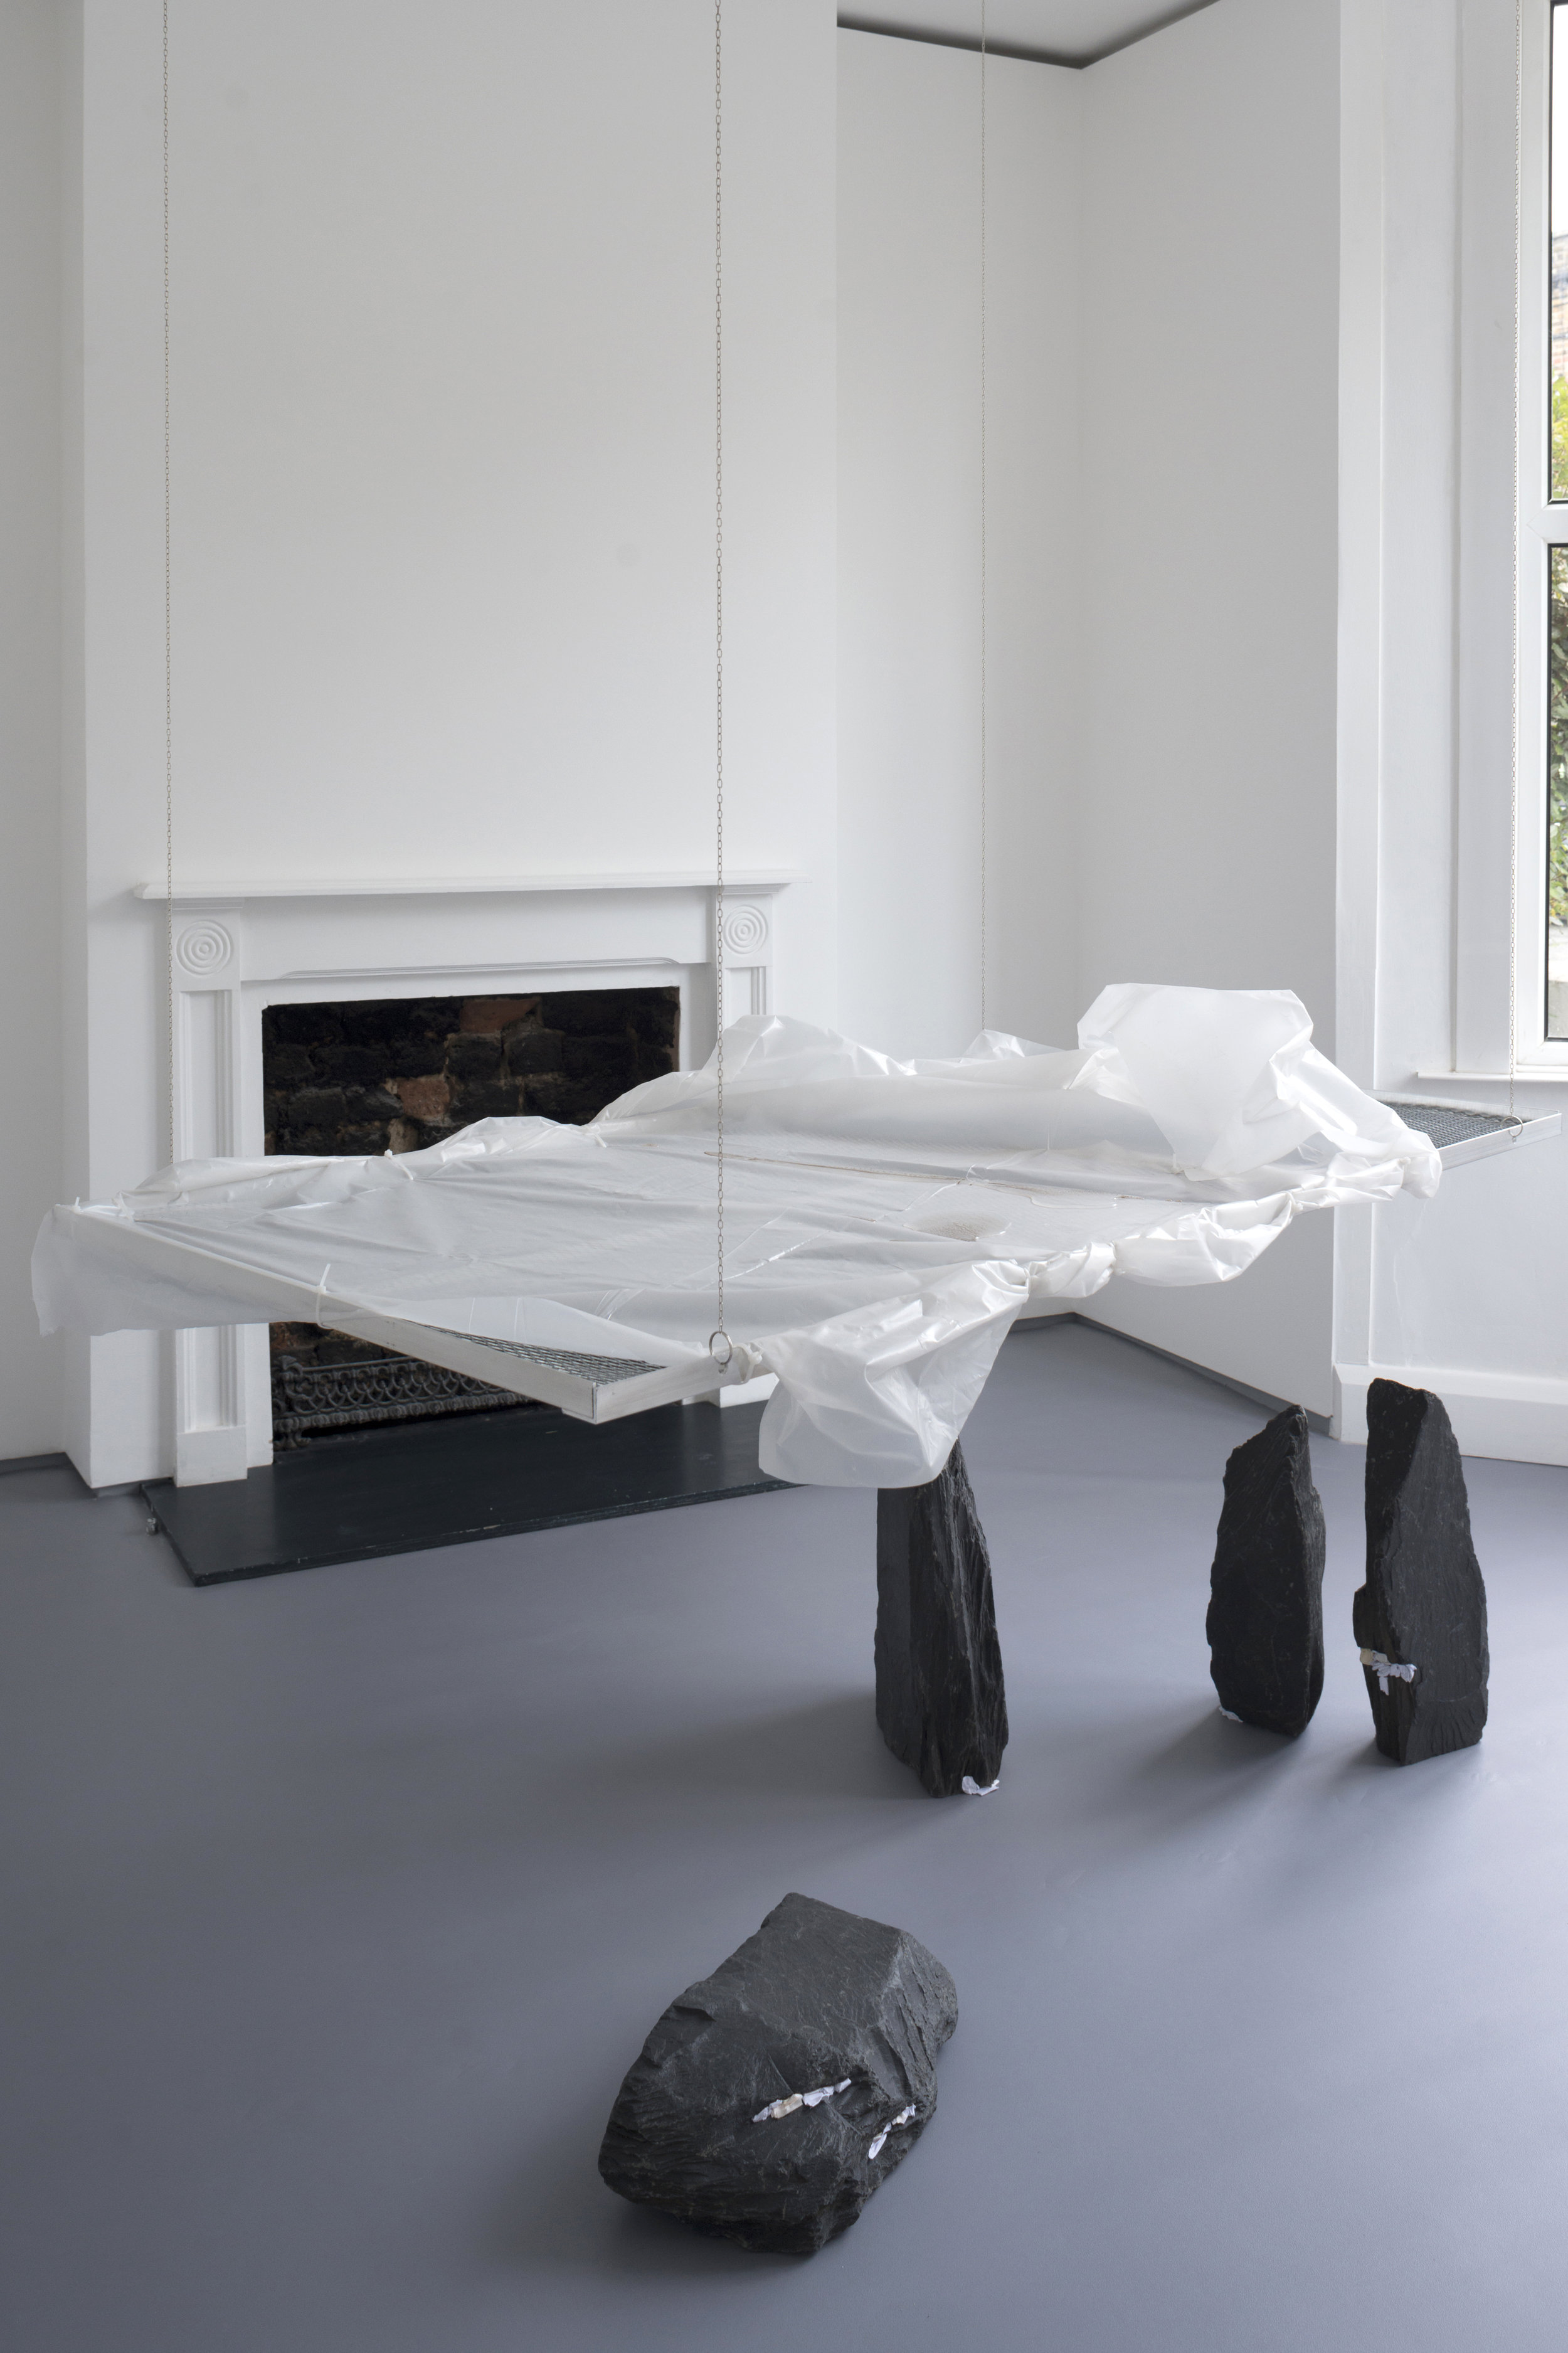 Drift, 2017 Aluminium, cable ties, plastic sheet, steel mesh and mop water; and slate with folded paper  155 x 80 x 2.5cm; and dimensions variable